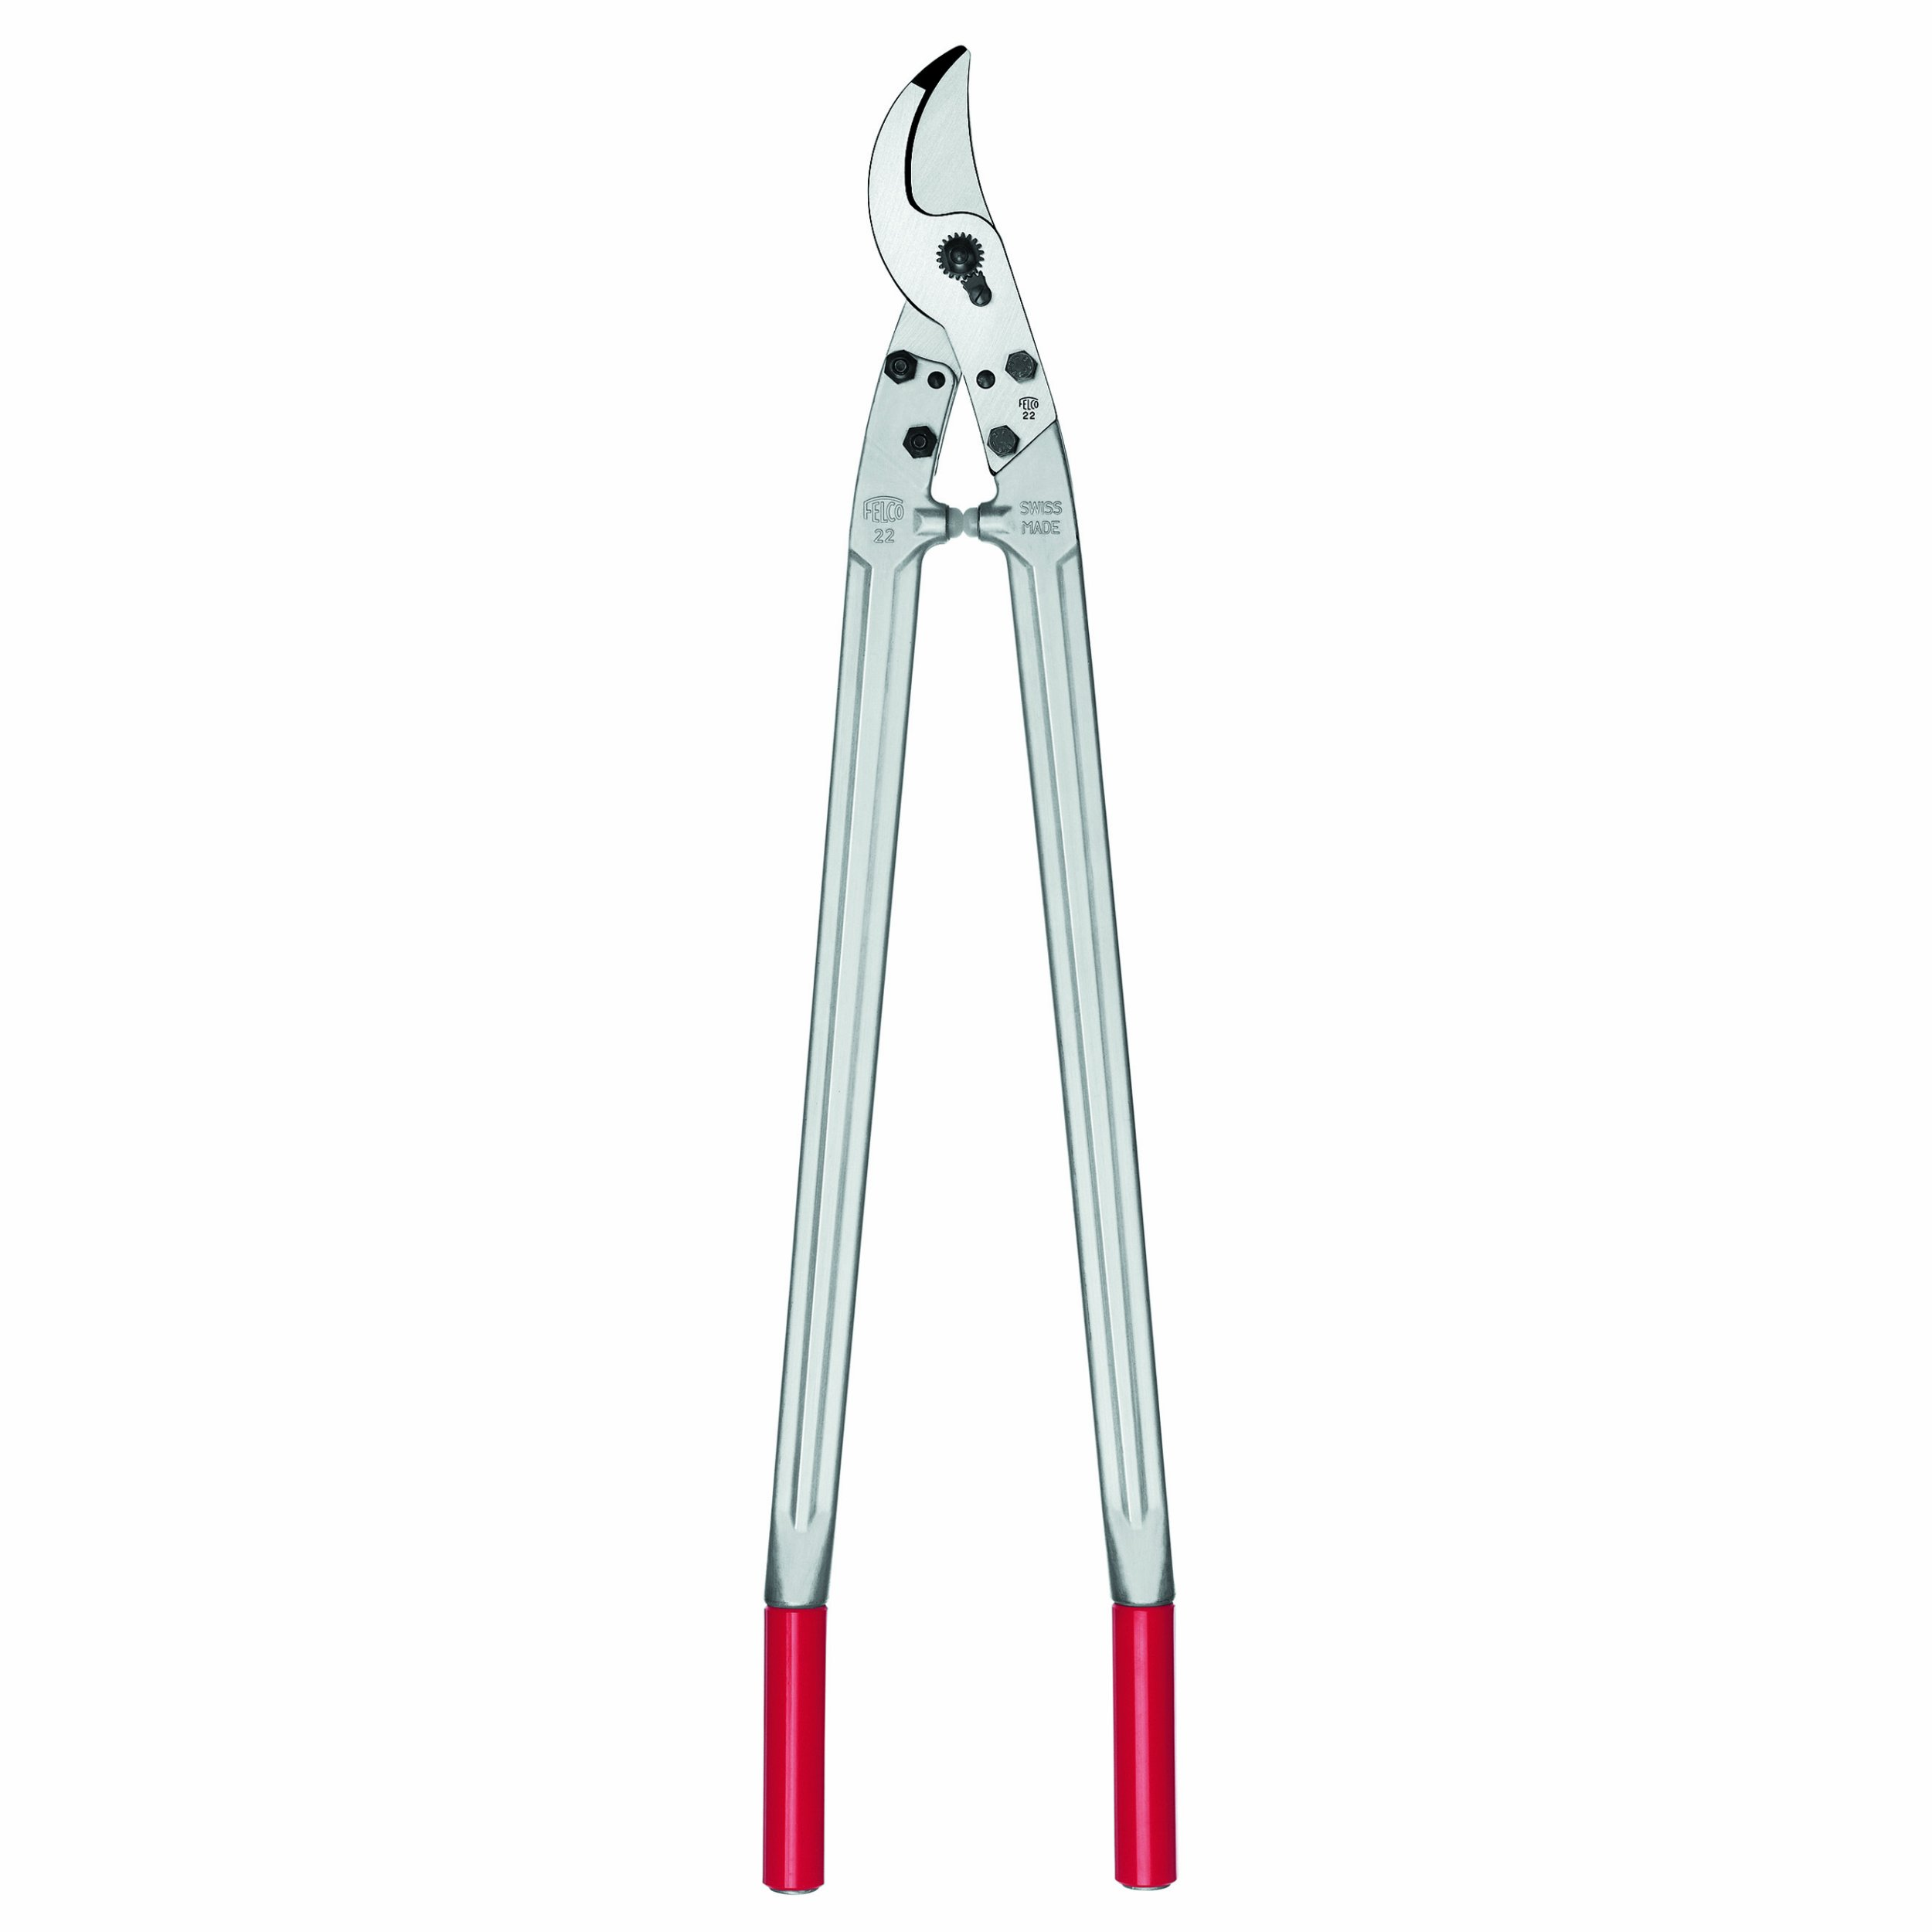 Felco 30 in. Bypass Lopper